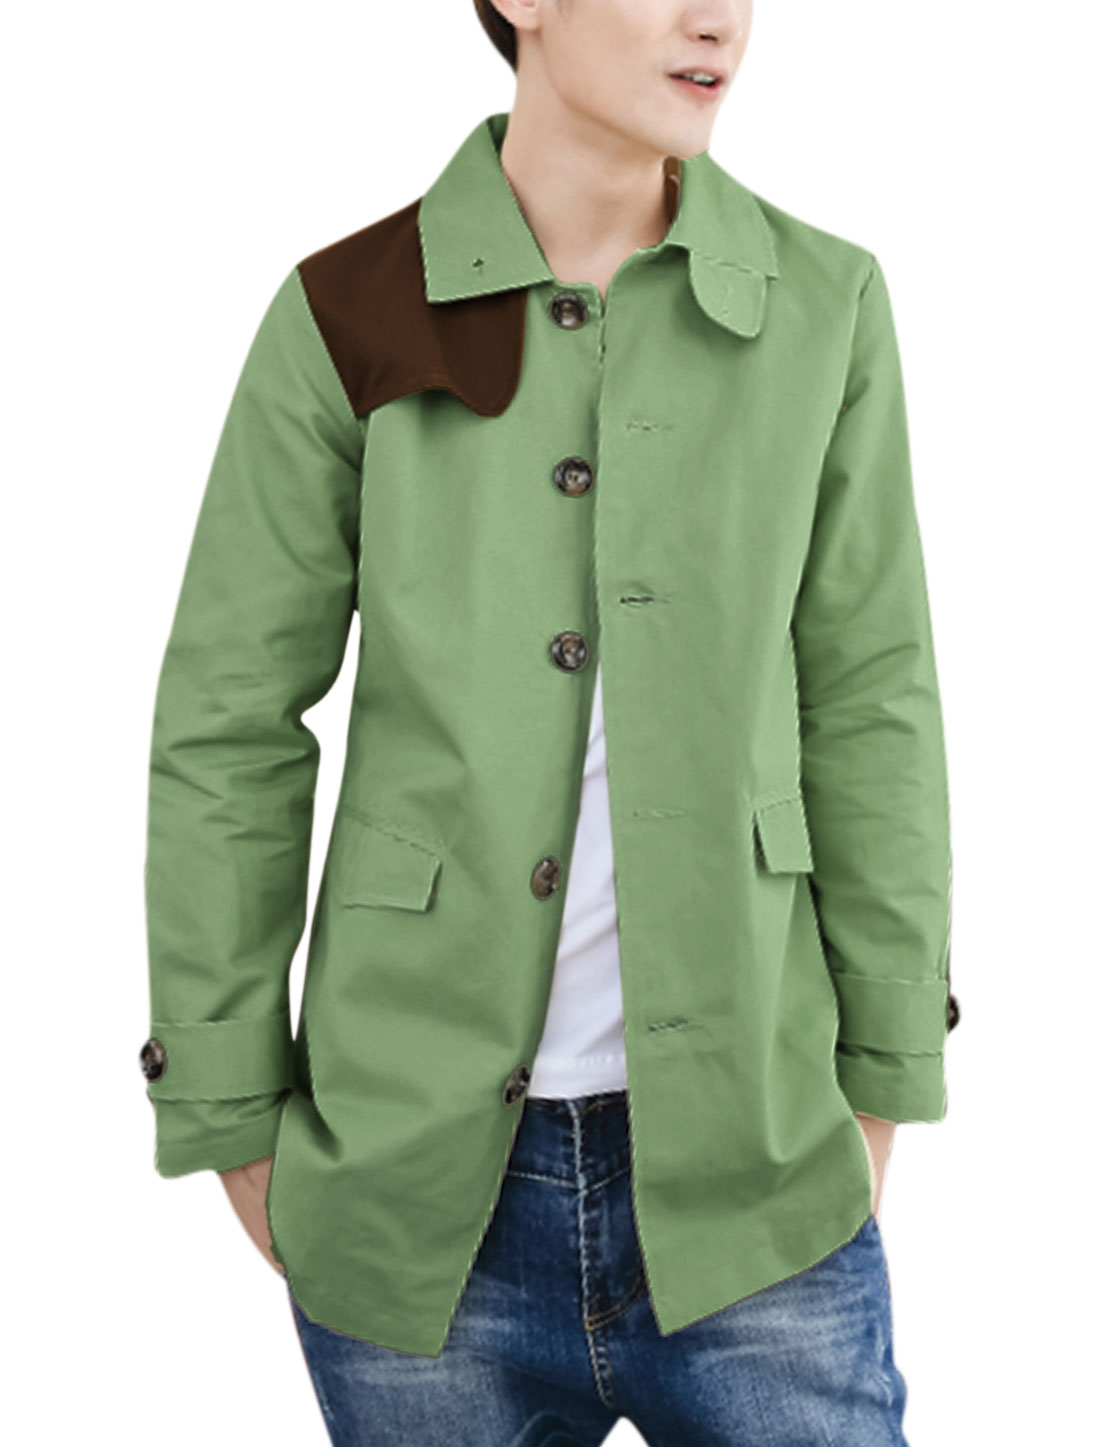 Men Full Lined Contrast Color Gun Flap Elbow Patches Casual Jacket Light Green M